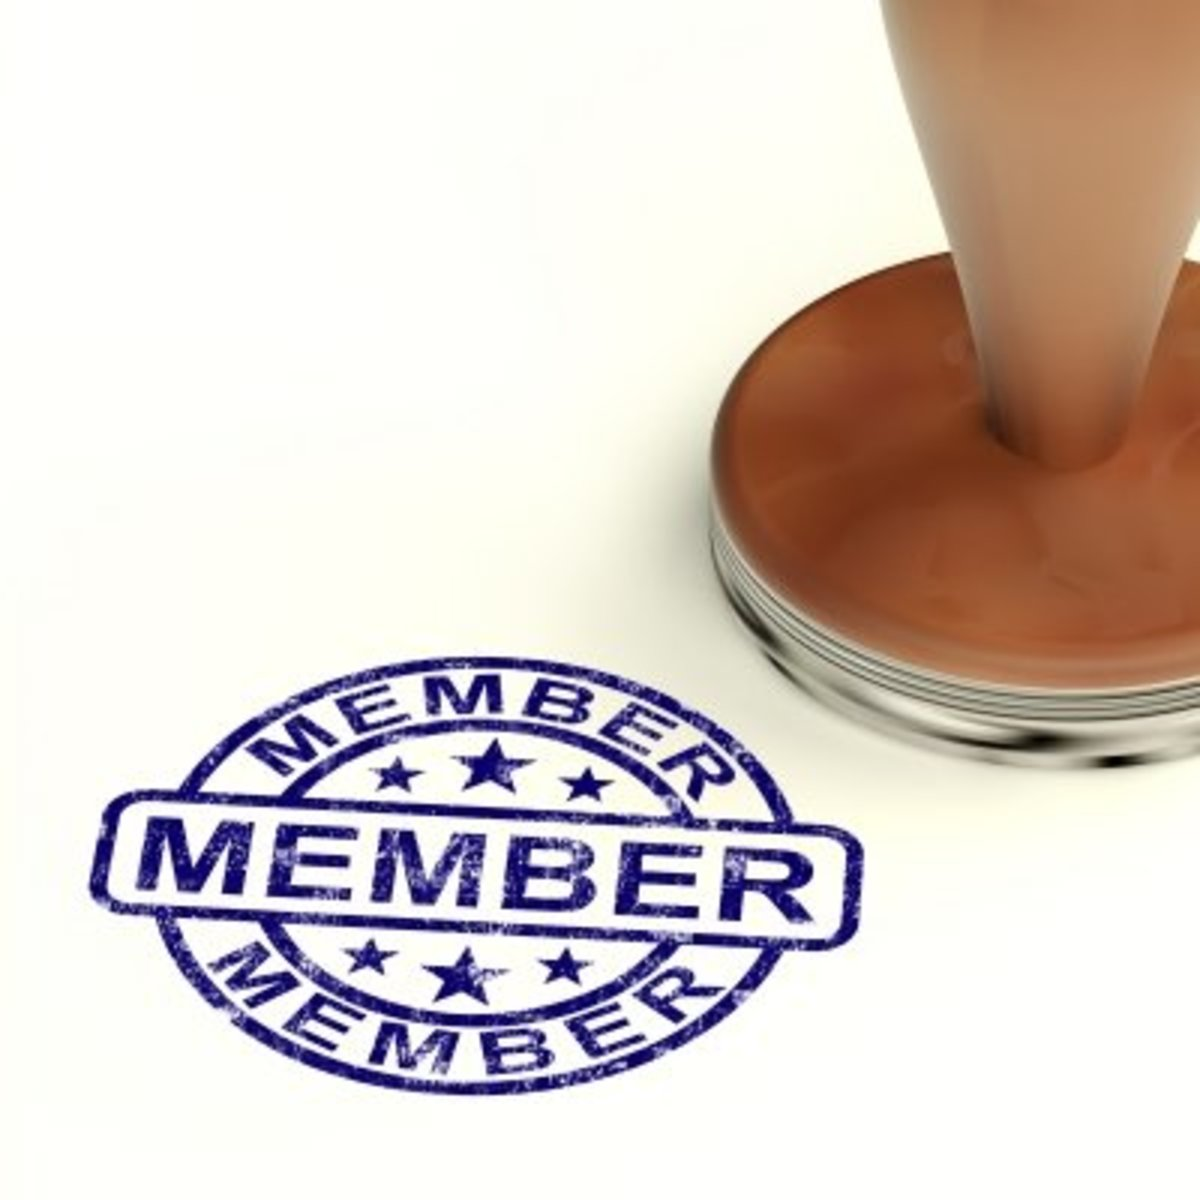 Sign up for a membership with a political party.